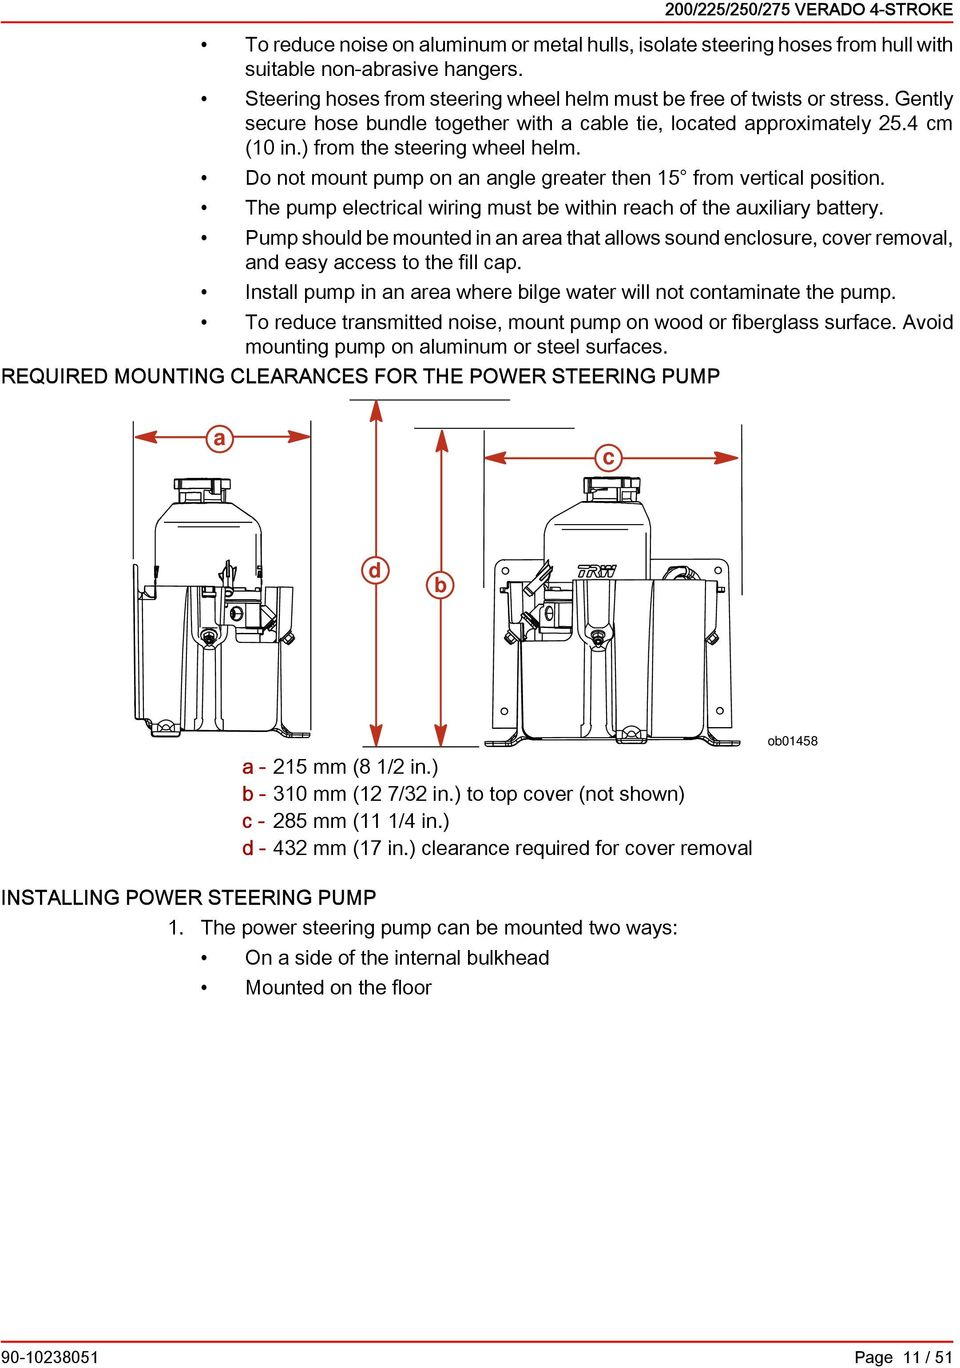 200 225 250 275 Verado 4 Stroke Installation Manual Pdf Diagram For Wiring 8 Pin Nr 51 Th Pump Ltril Must Within Rh Of Uxiliry Ttry Shoul Mount In